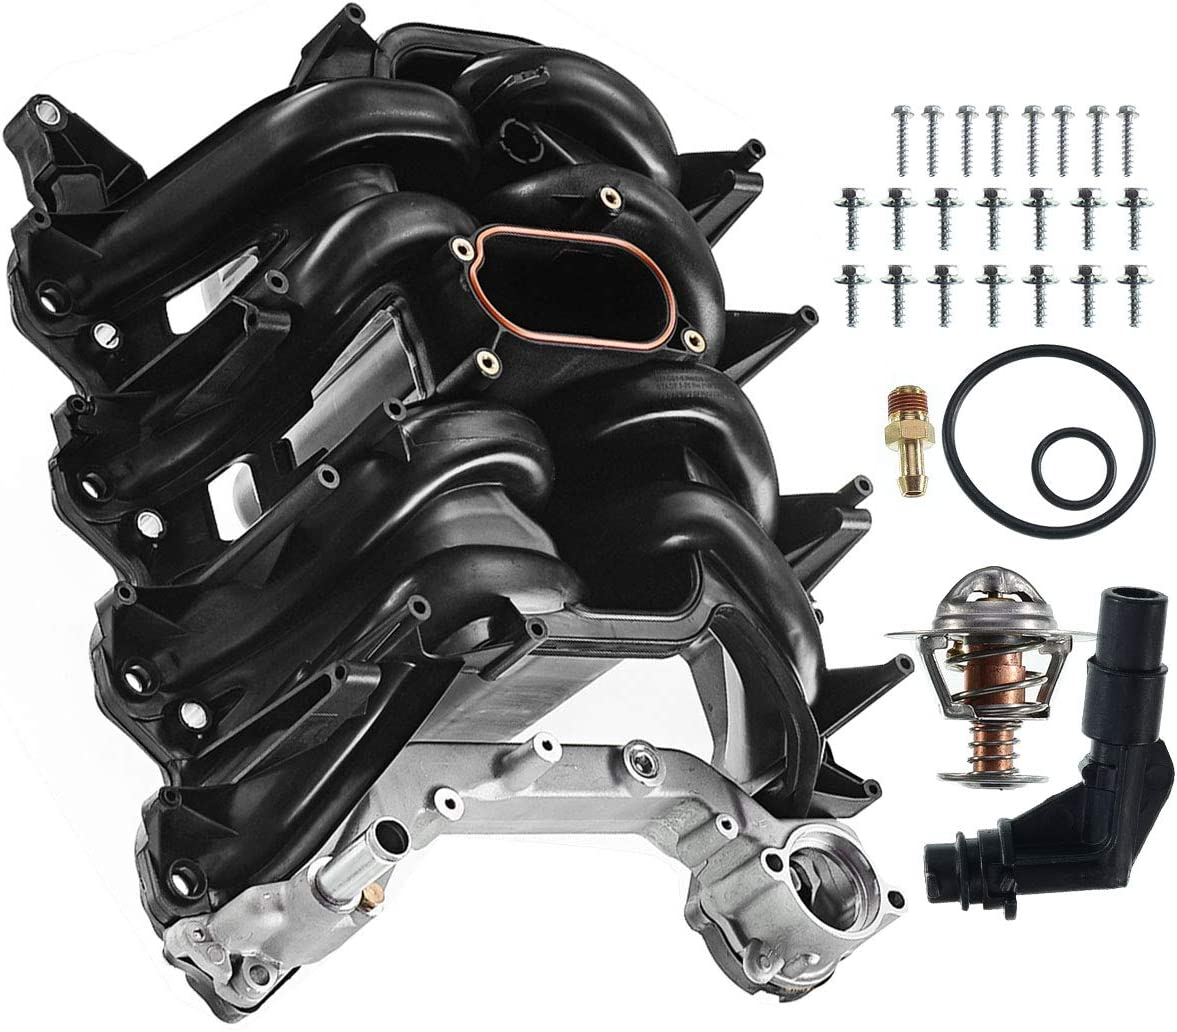 A-Premium Upper Intake Manifold with Gasket Kit for Ford Expedition Excursion F-150 E-150 E-250 E-350 Super Duty